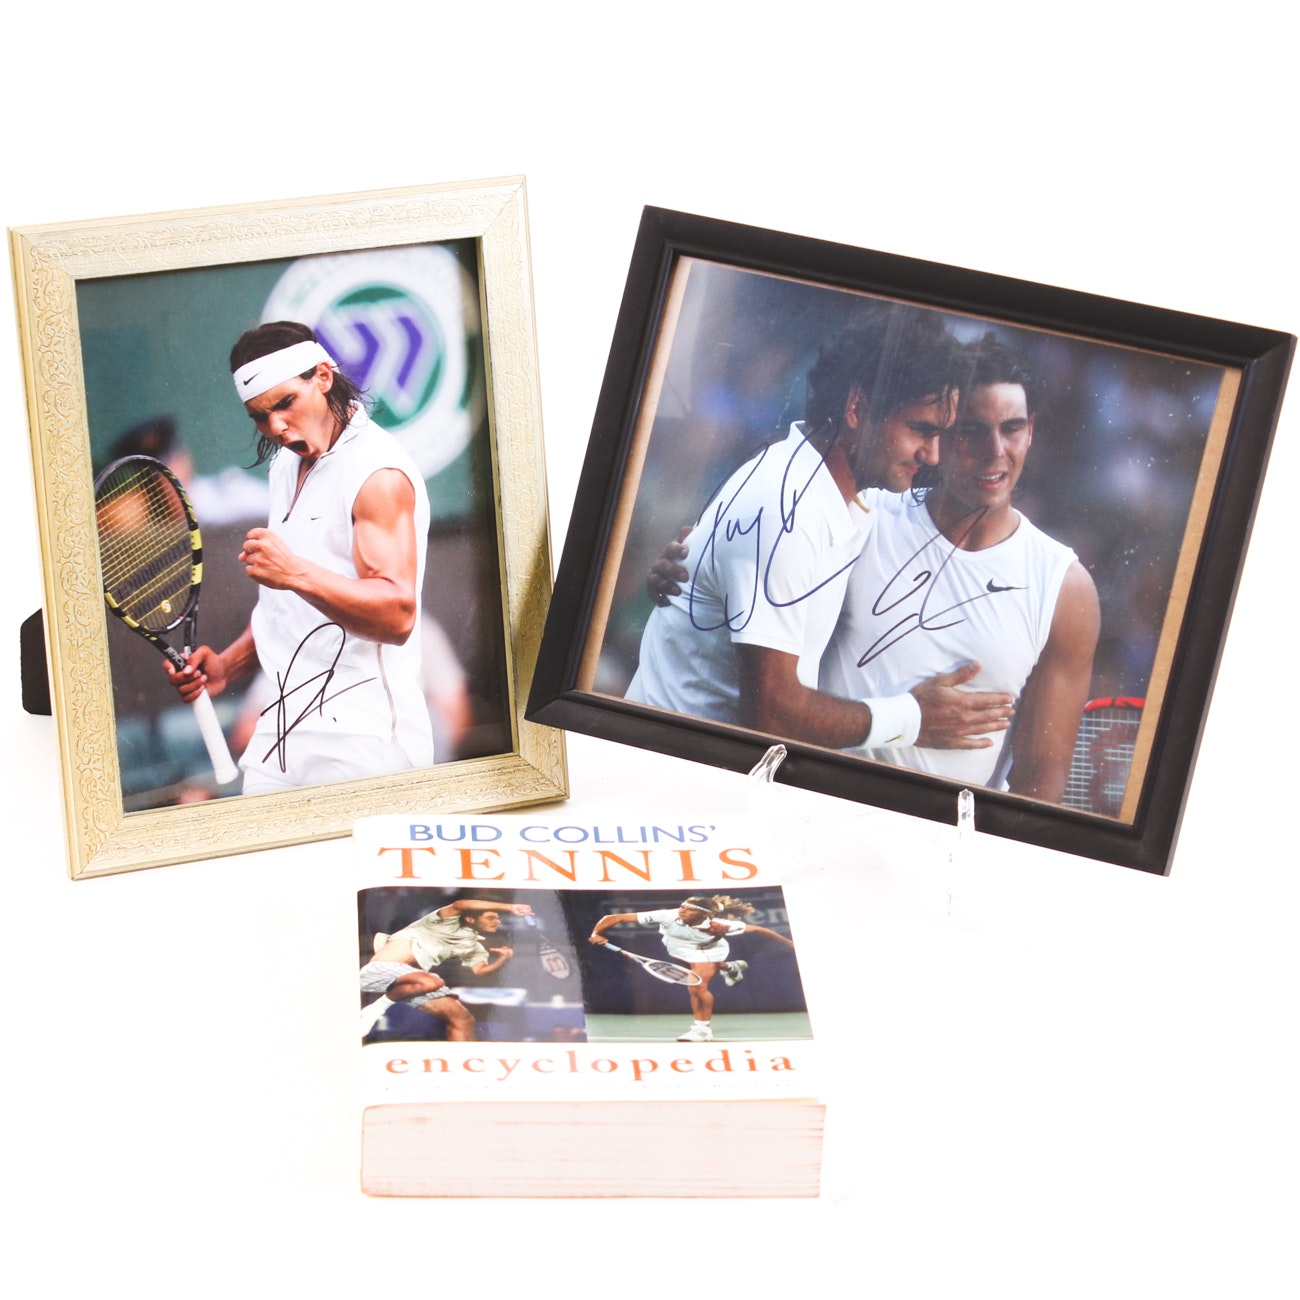 Signed Photos of Roger Federer, Rafael Nadal and Signed Bud Collins' Tennis Book